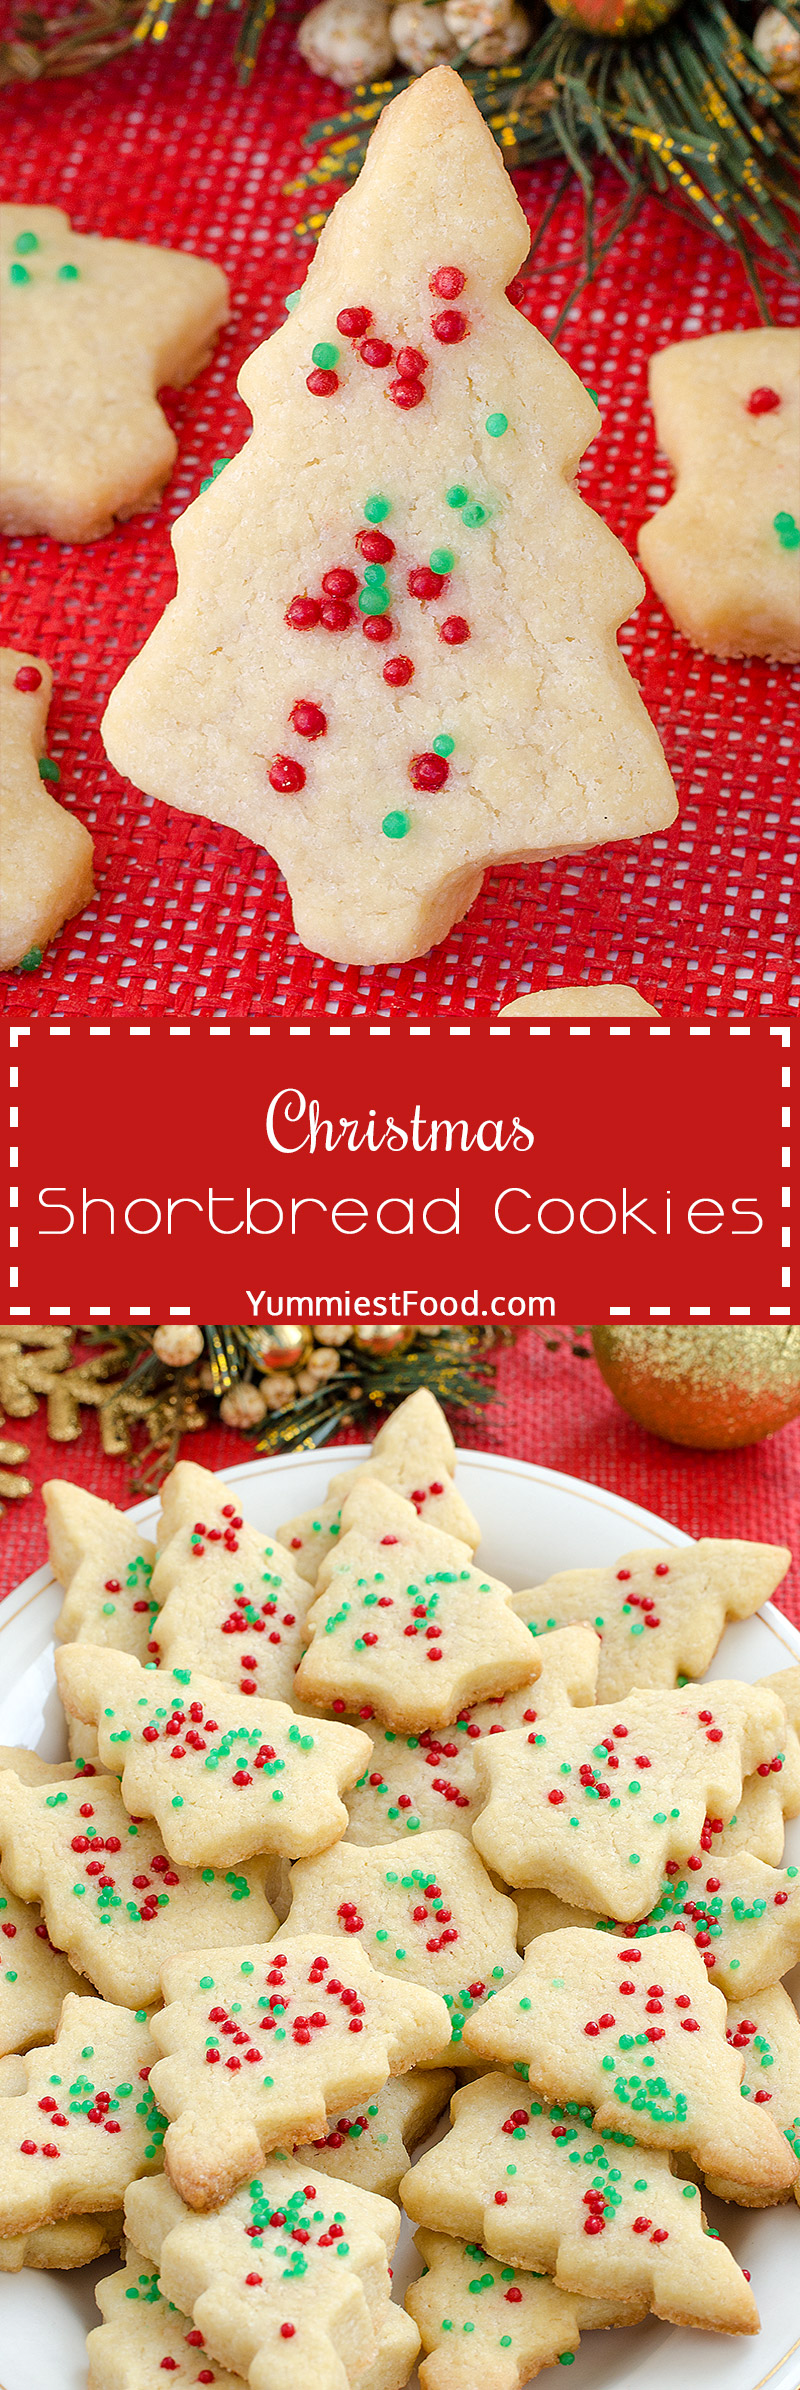 Christmas Shortbread Cookies Recipe - adorable, delicious, and tasty Shortbread Cookies with only 4 ingredients